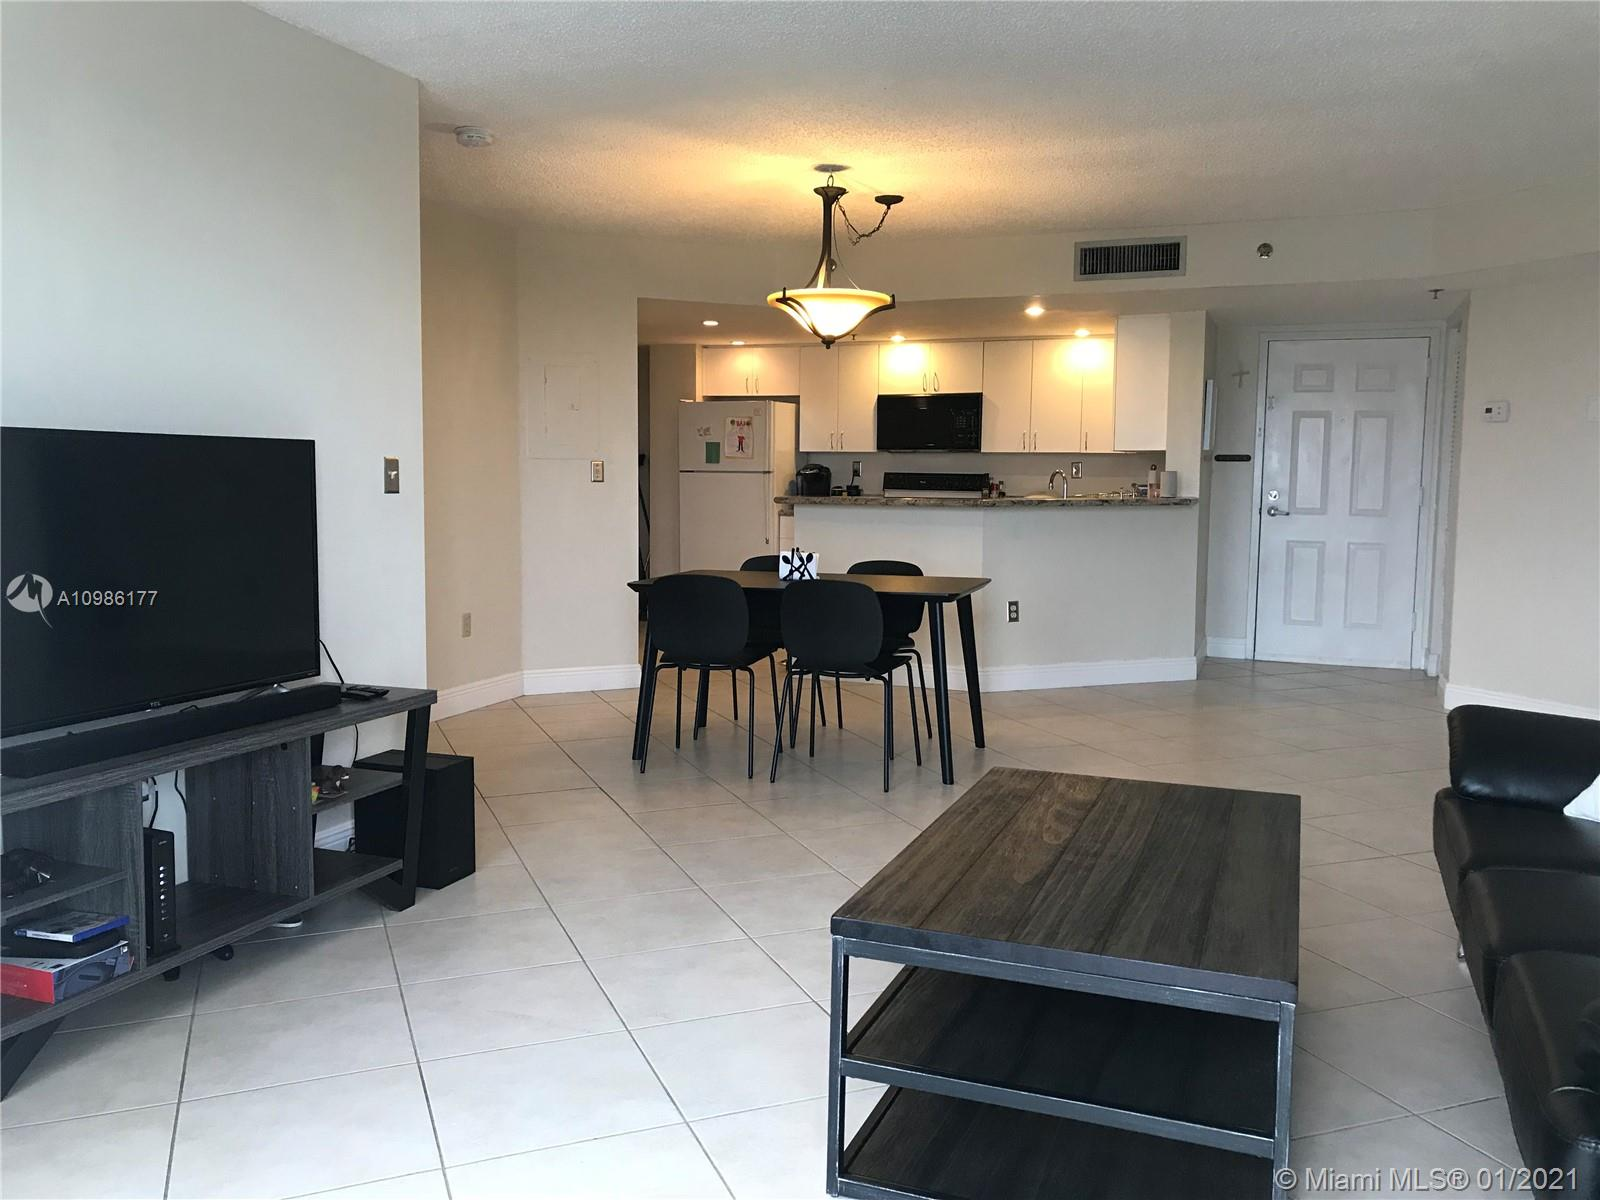 GREAT LOCATION! 2/2 Corner unit on the 11th floor overlooking Beautiful Coral Gables - 